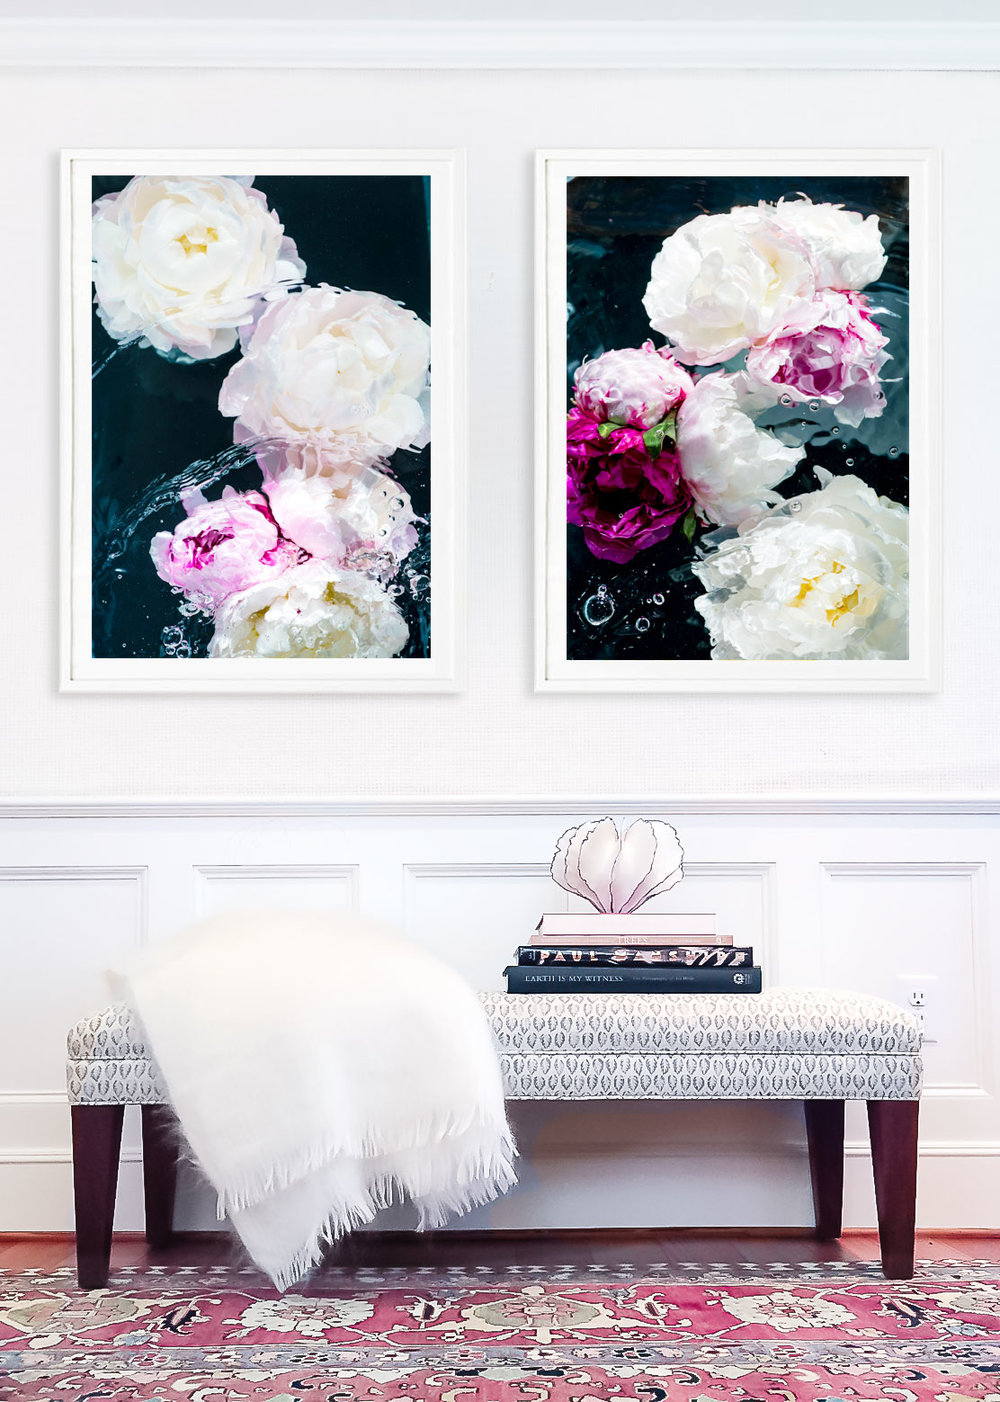 Botanical and Floral Art by Jessica Kenyon Studio, shown in Framebridge